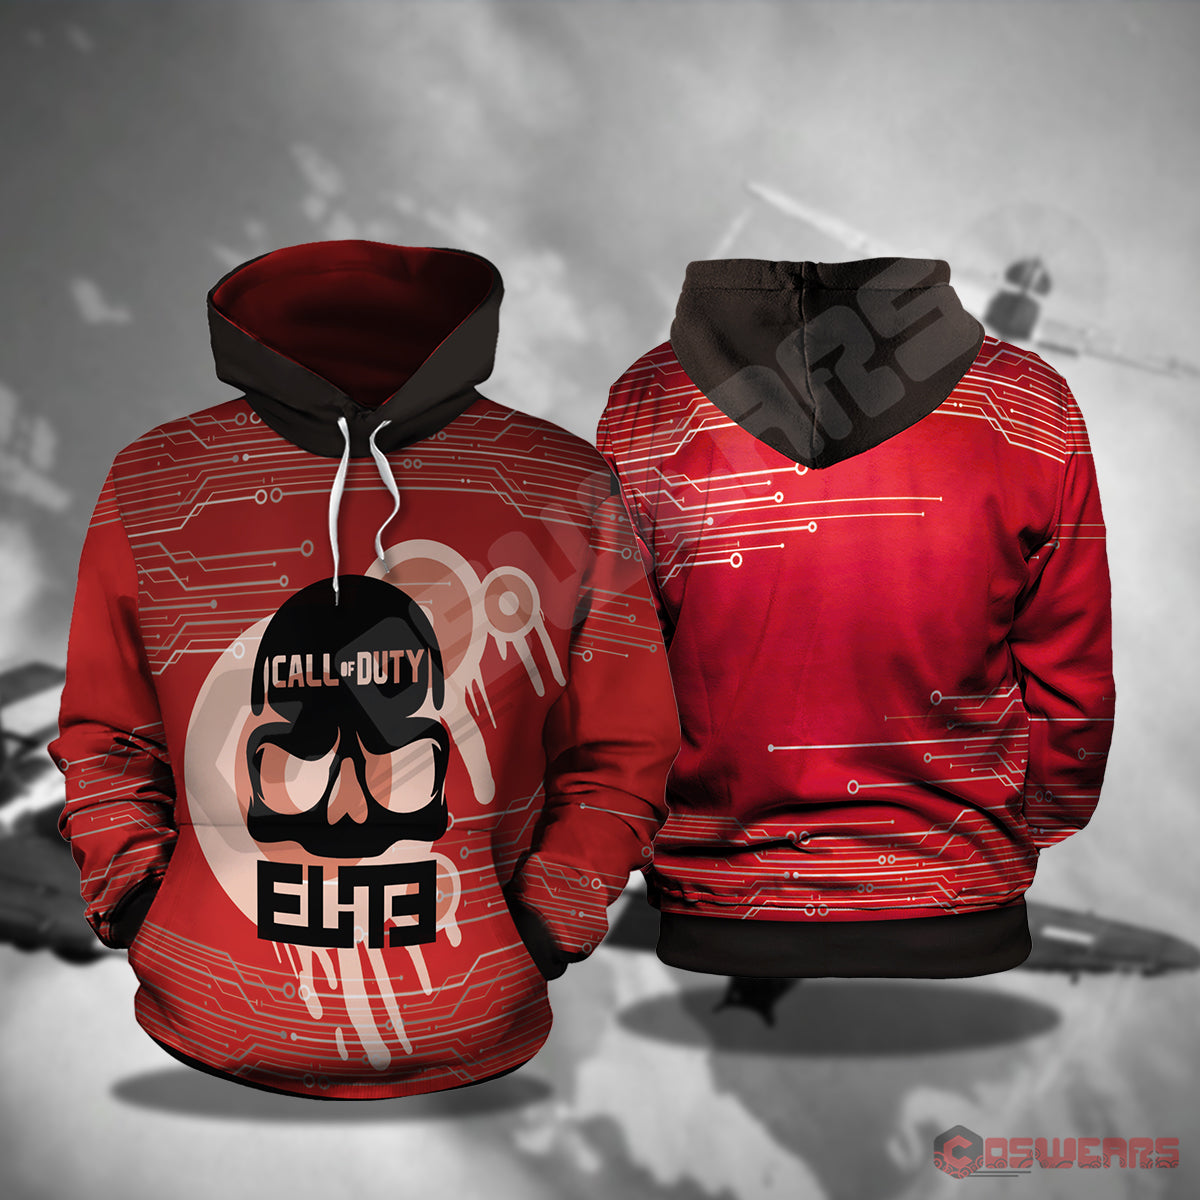 Call Of Duty : Elite Pullover Hoodie